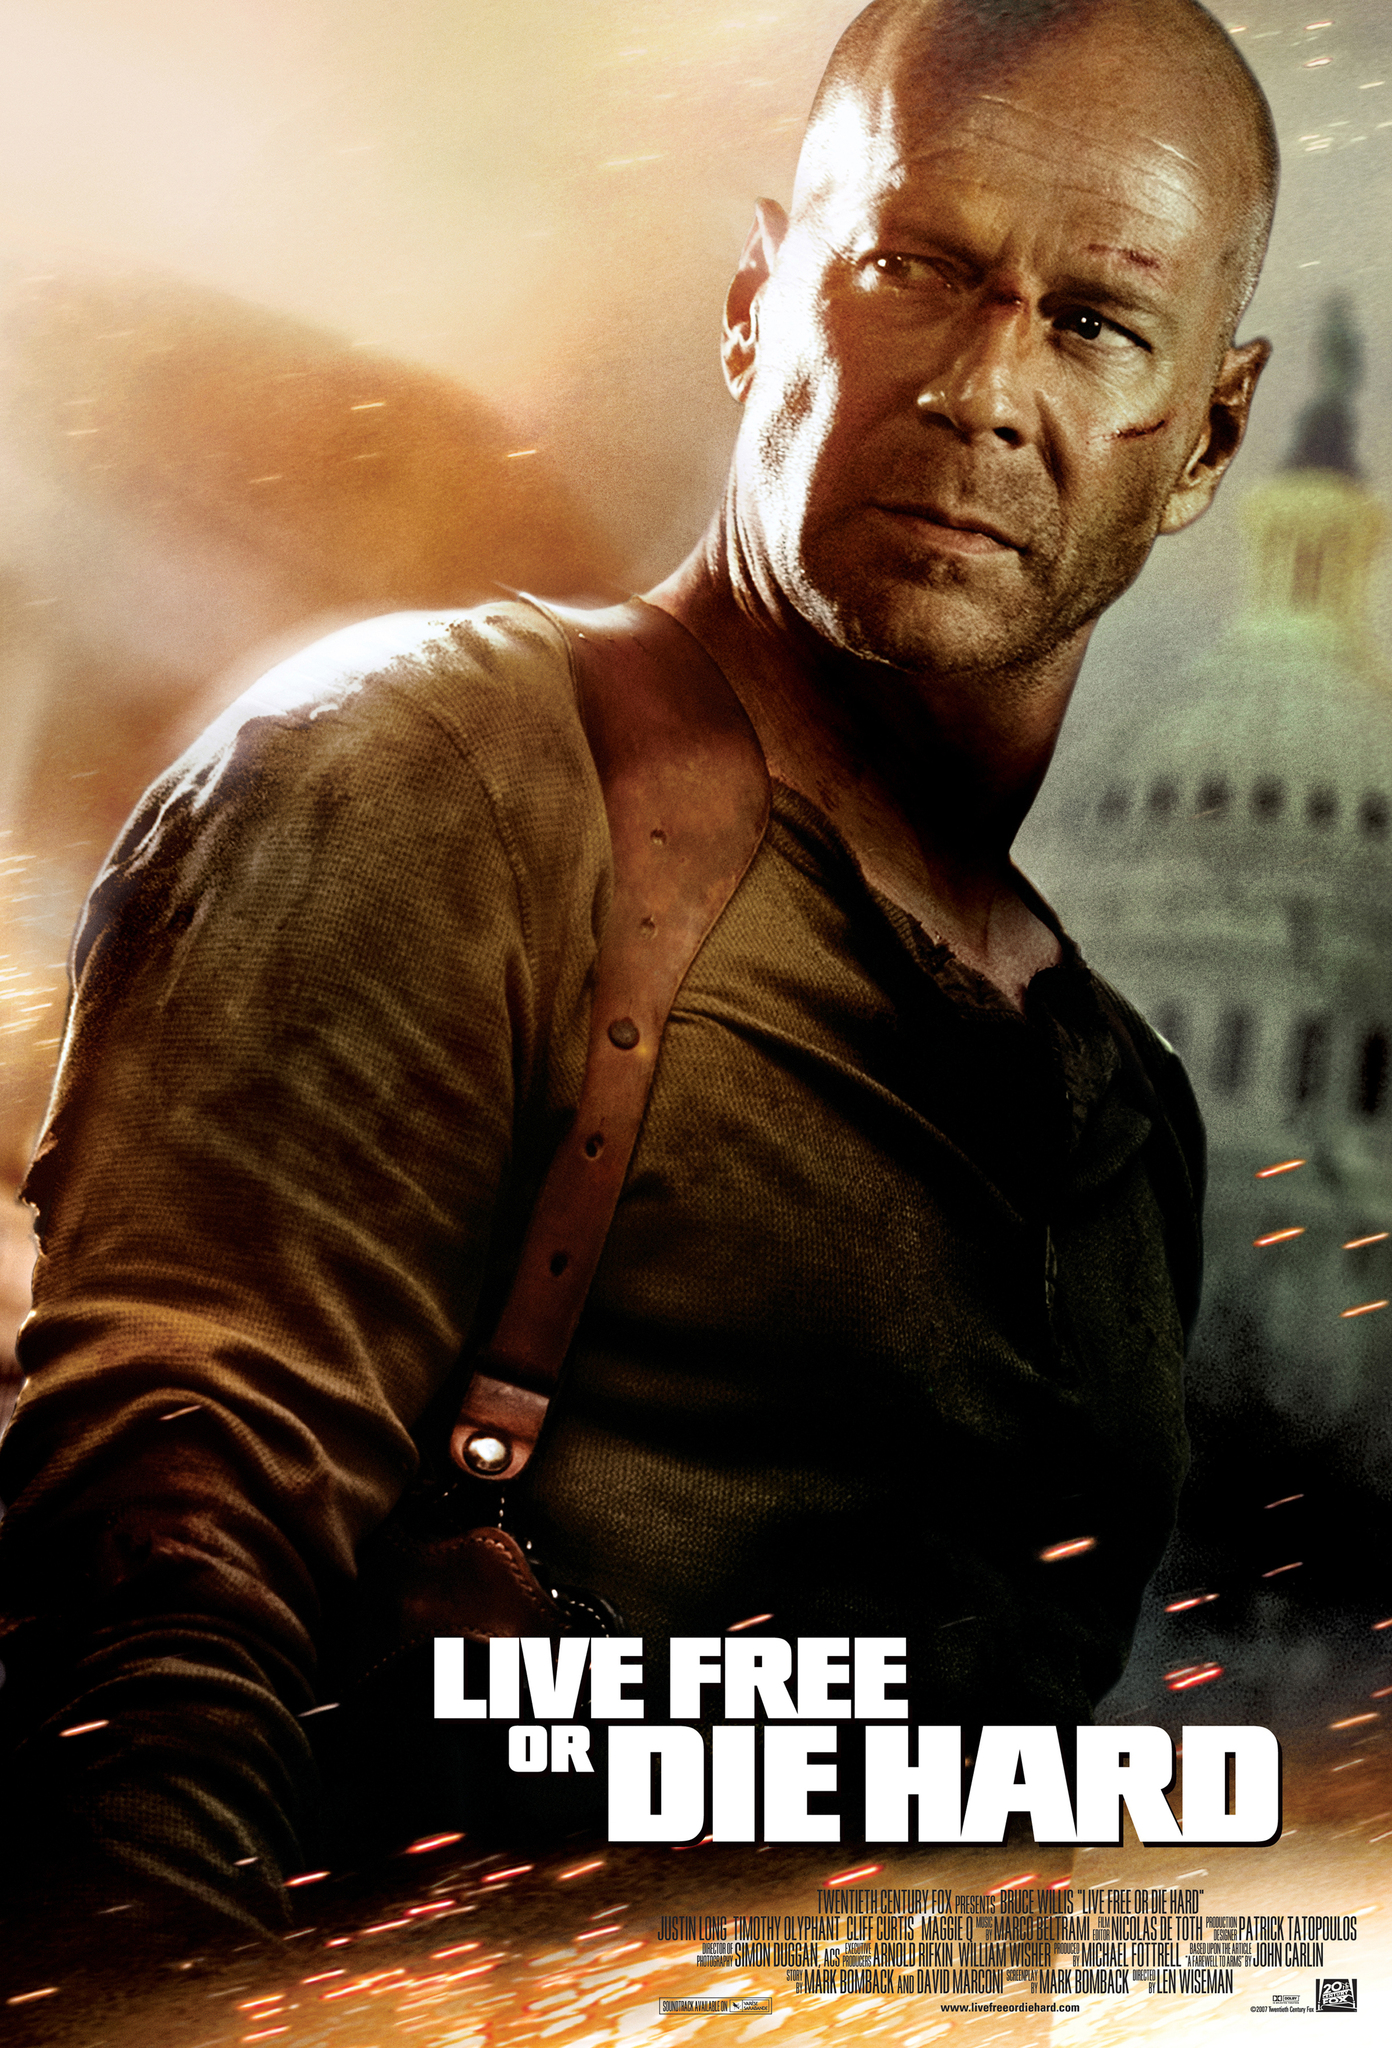 die hard 5 full movie watch online free